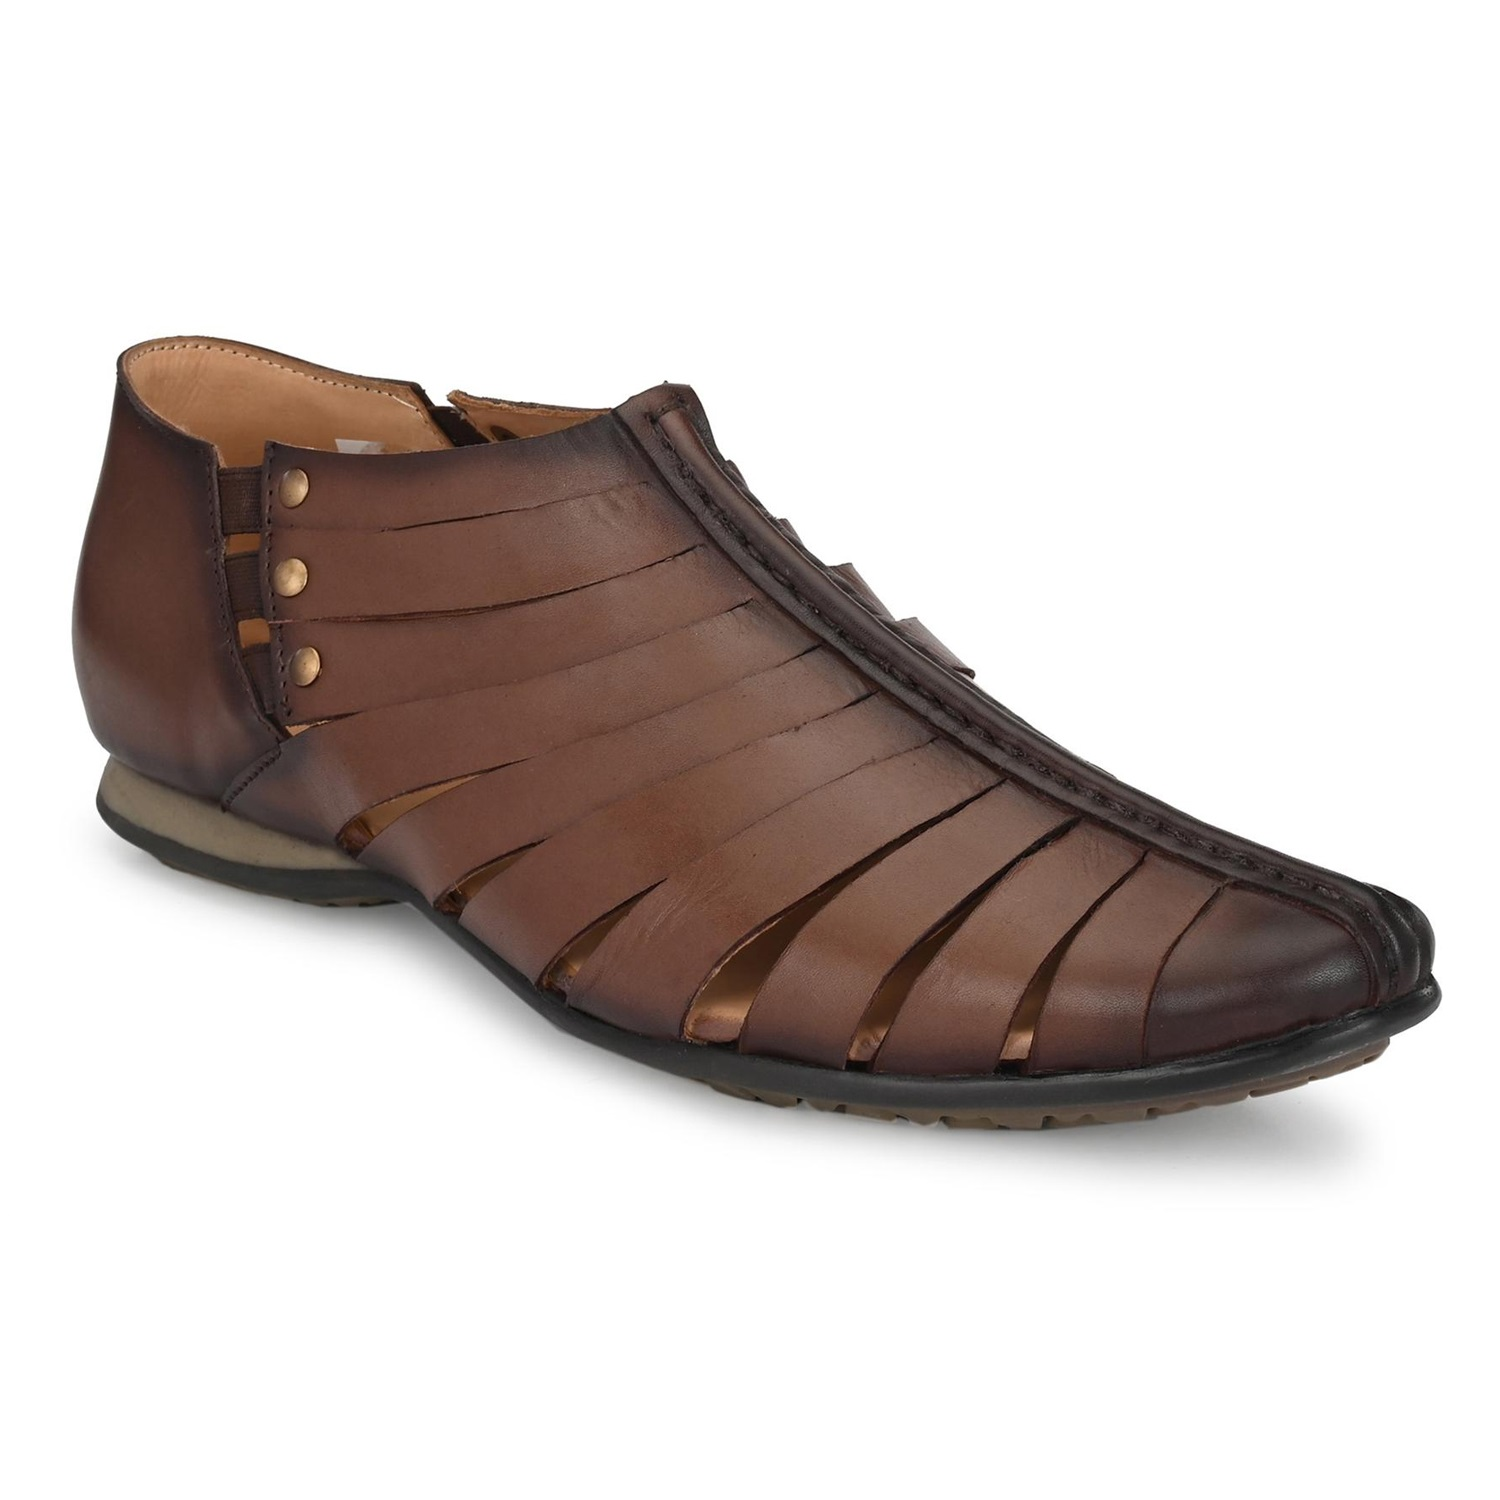 Hitz   Hitz Brown Casual Genuine Leather Sandal with Slip-On Fastening